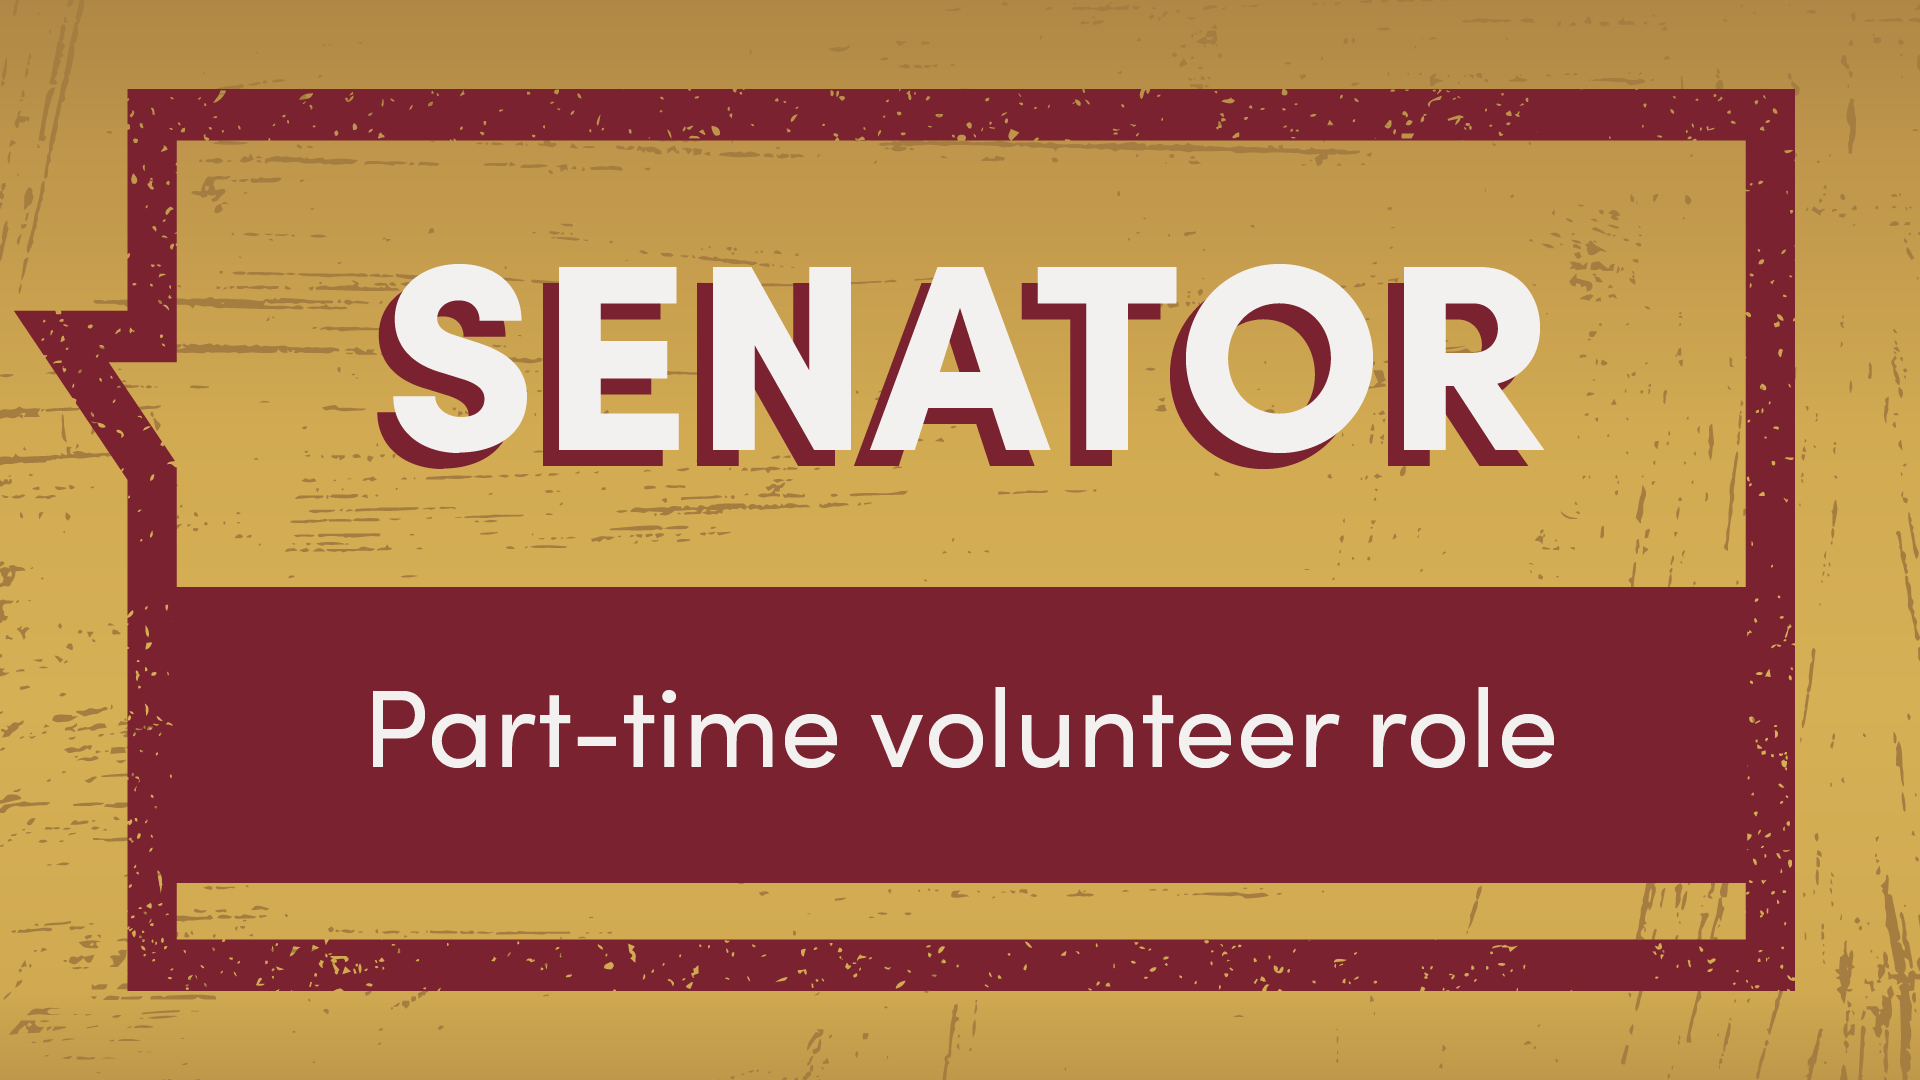 Senator part-time volunteer role